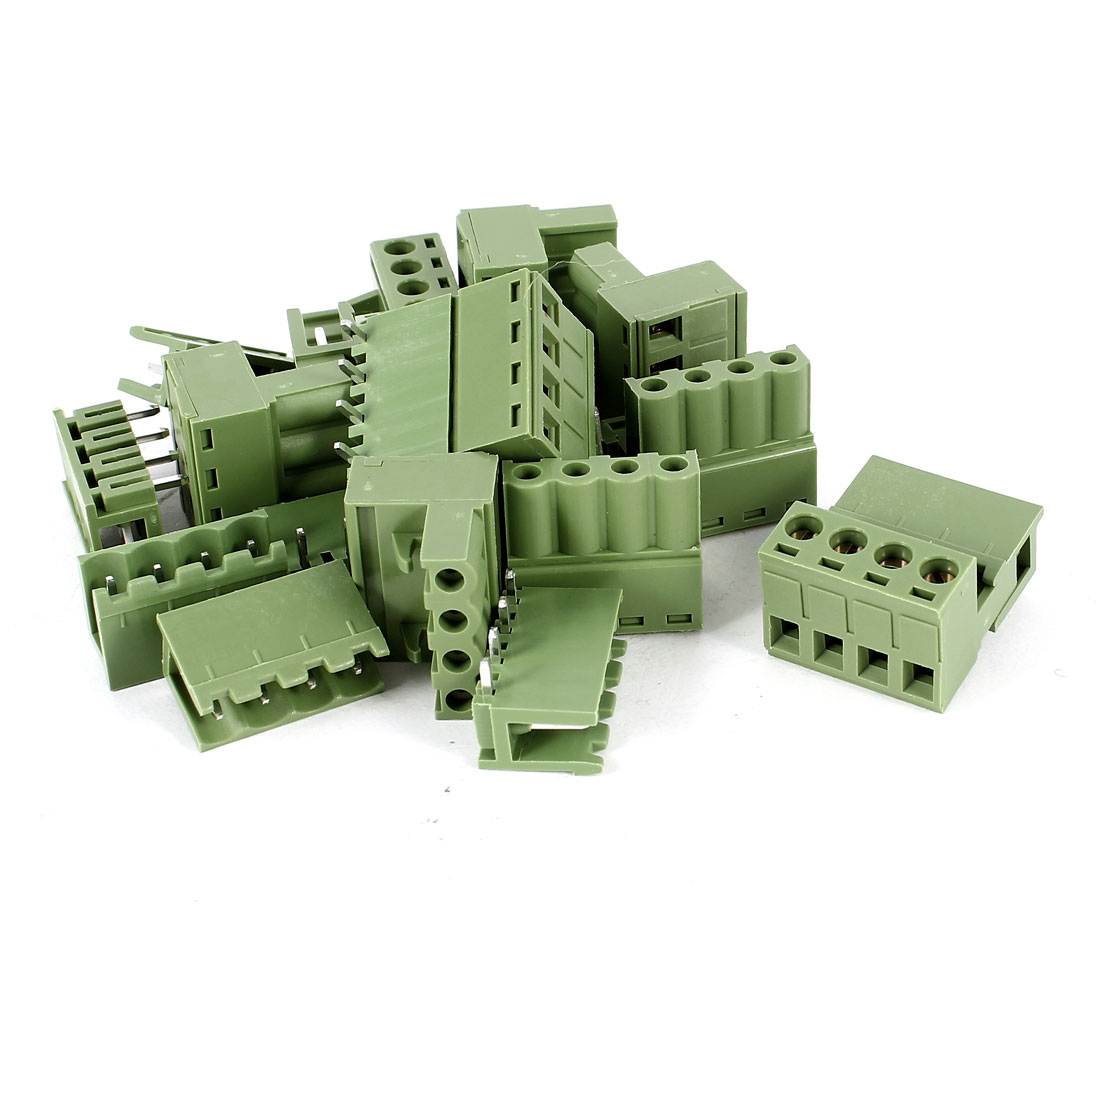 10 Pcs 4Pin 3.96mm Spacing PCB Screw Terminal Block Connector 300V 10A AWG12-24